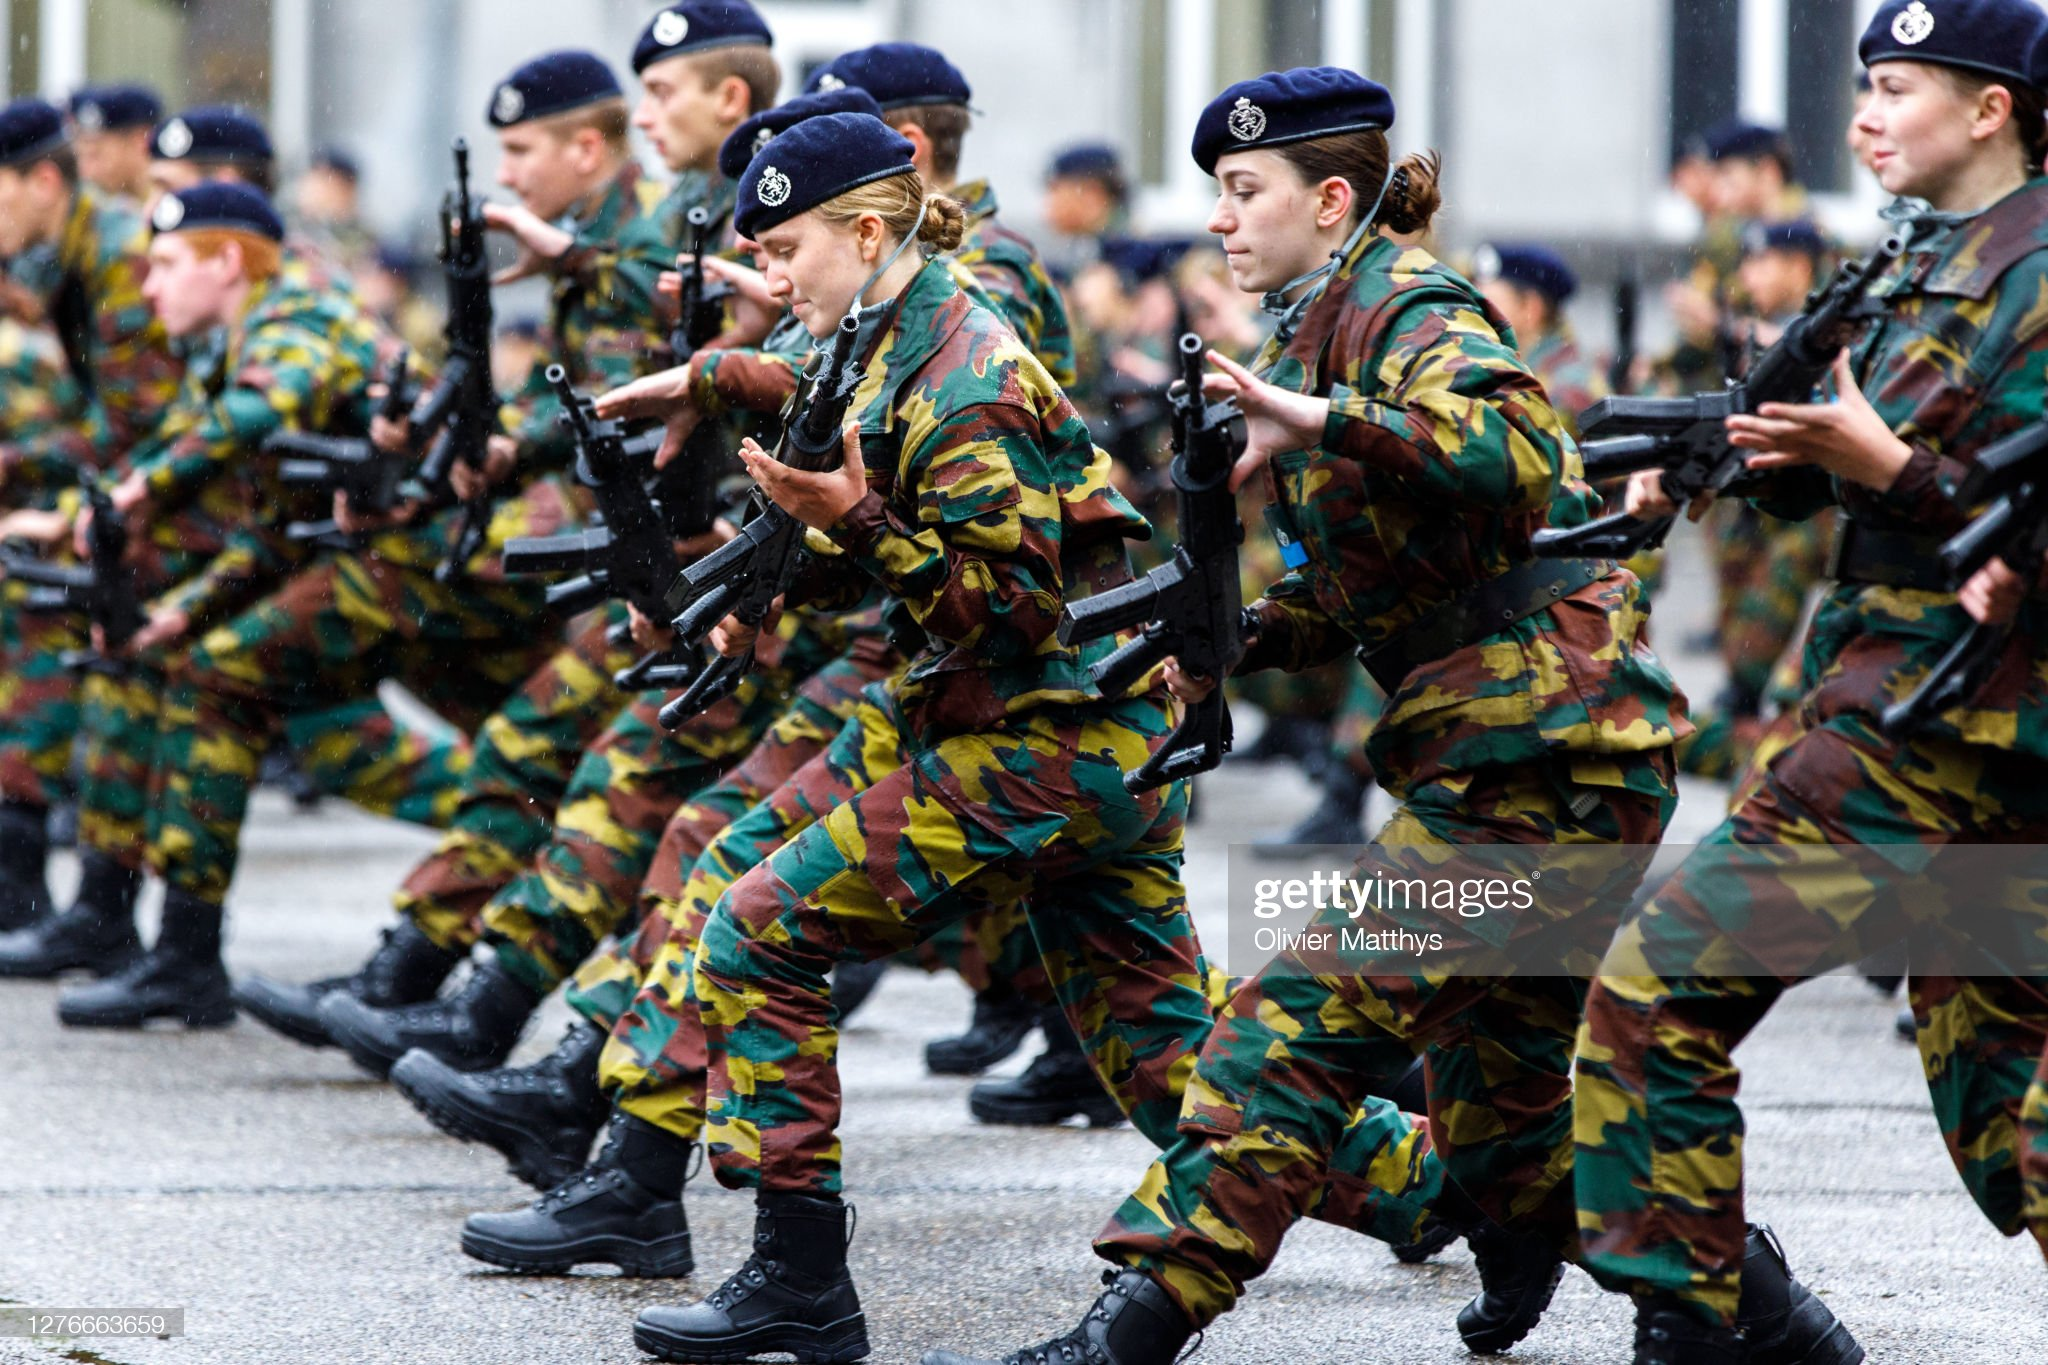 princess-elisabeth-of-belgium-and-her-platoon-salute-and-present-arms-picture-id1276663659